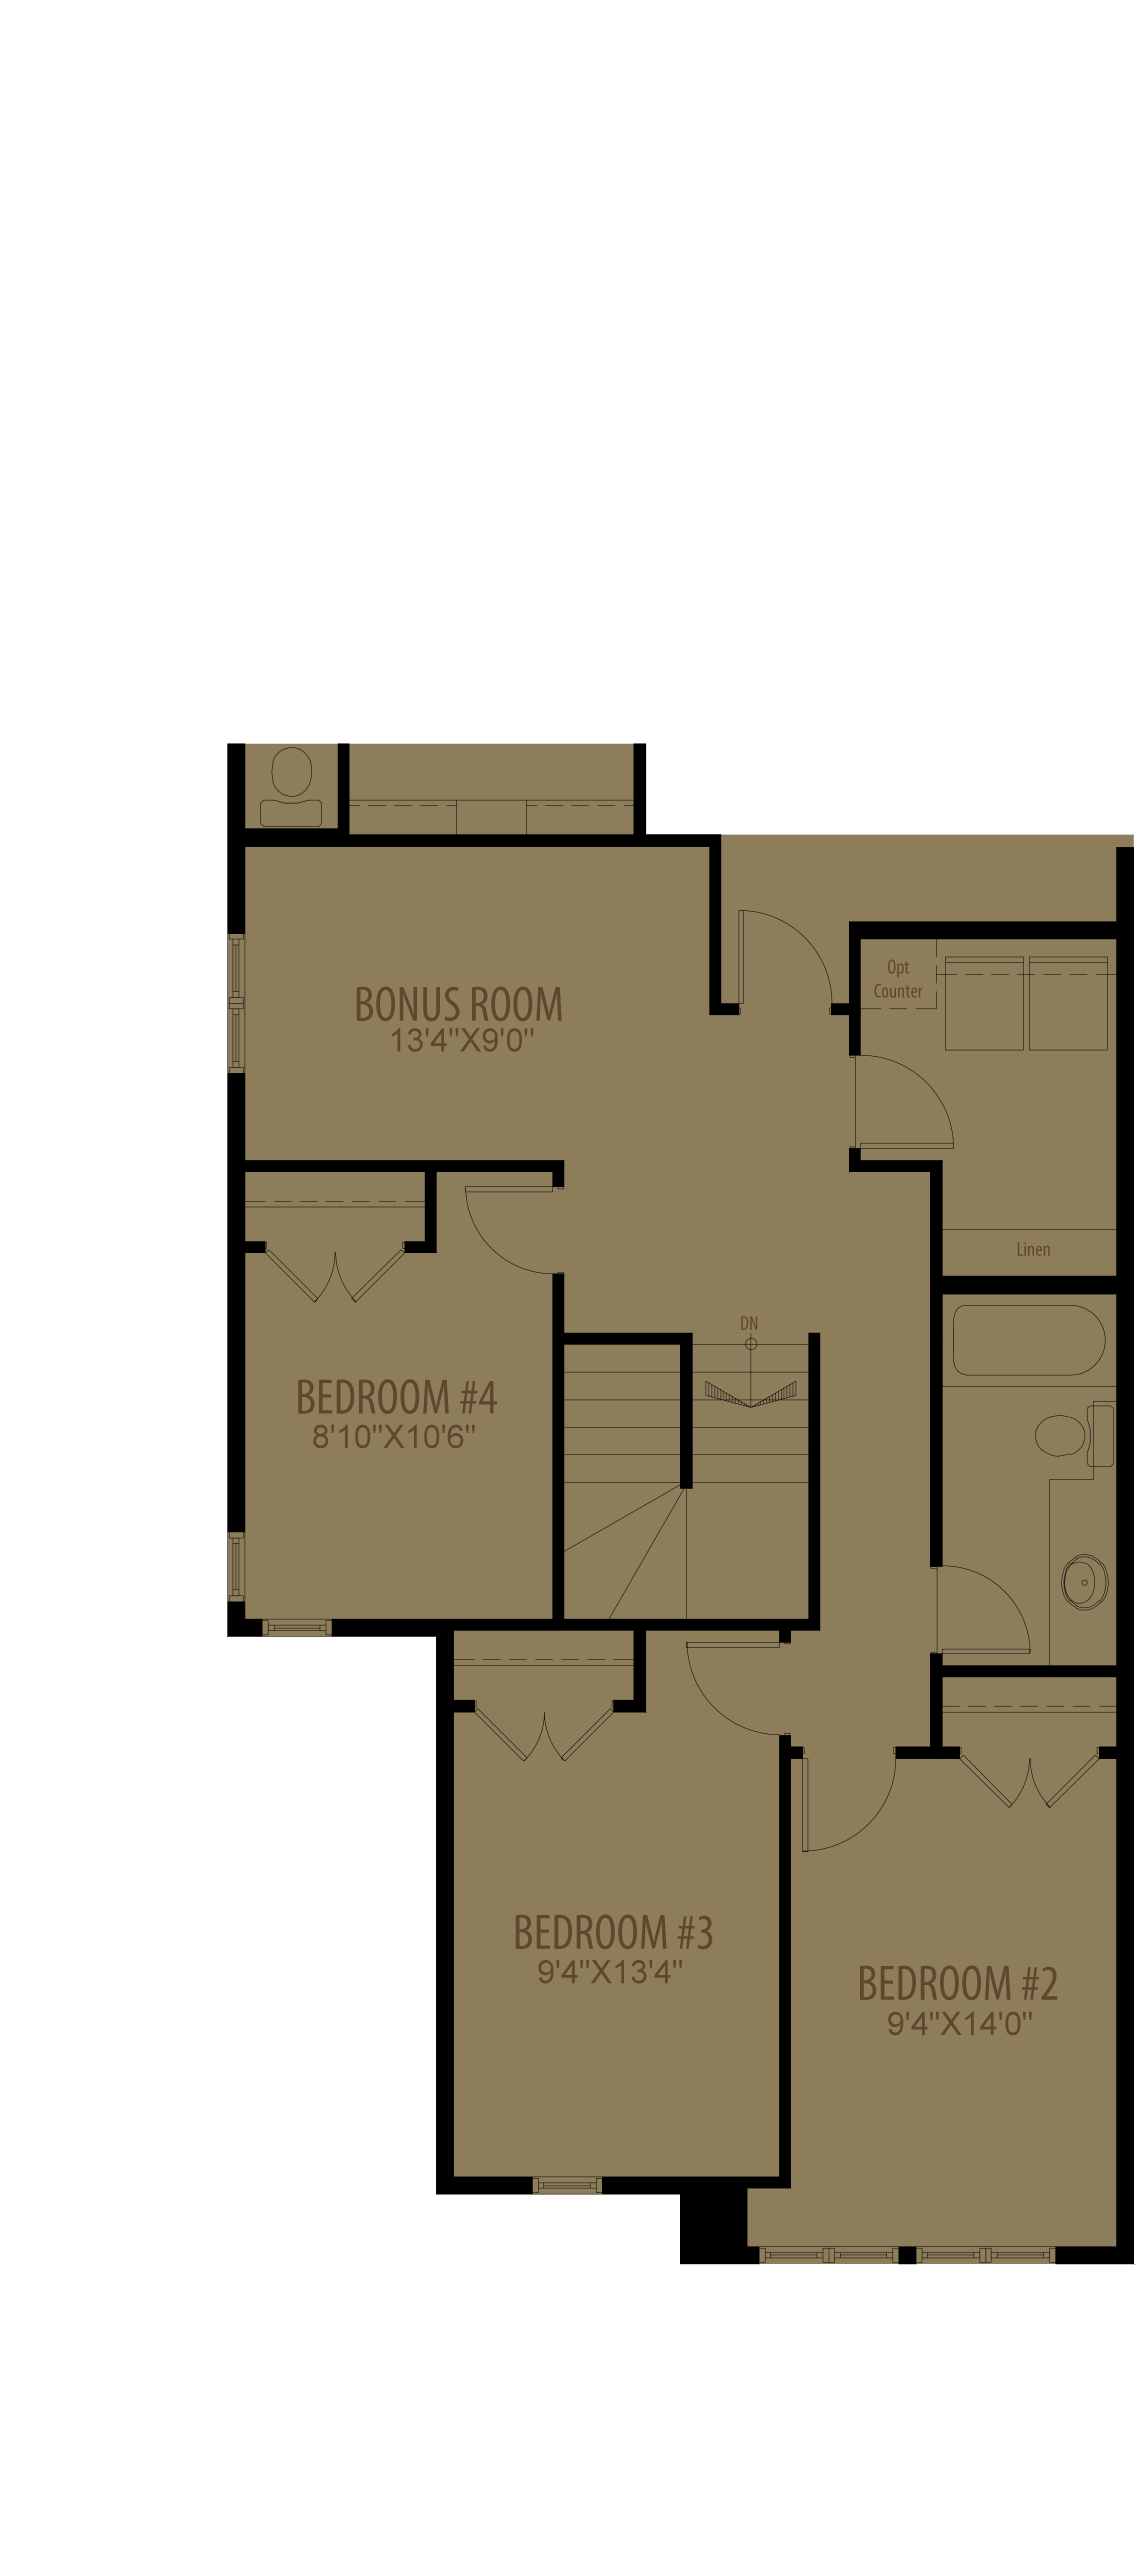 4Th Bedroom Revised Adds 100 Sq Ft